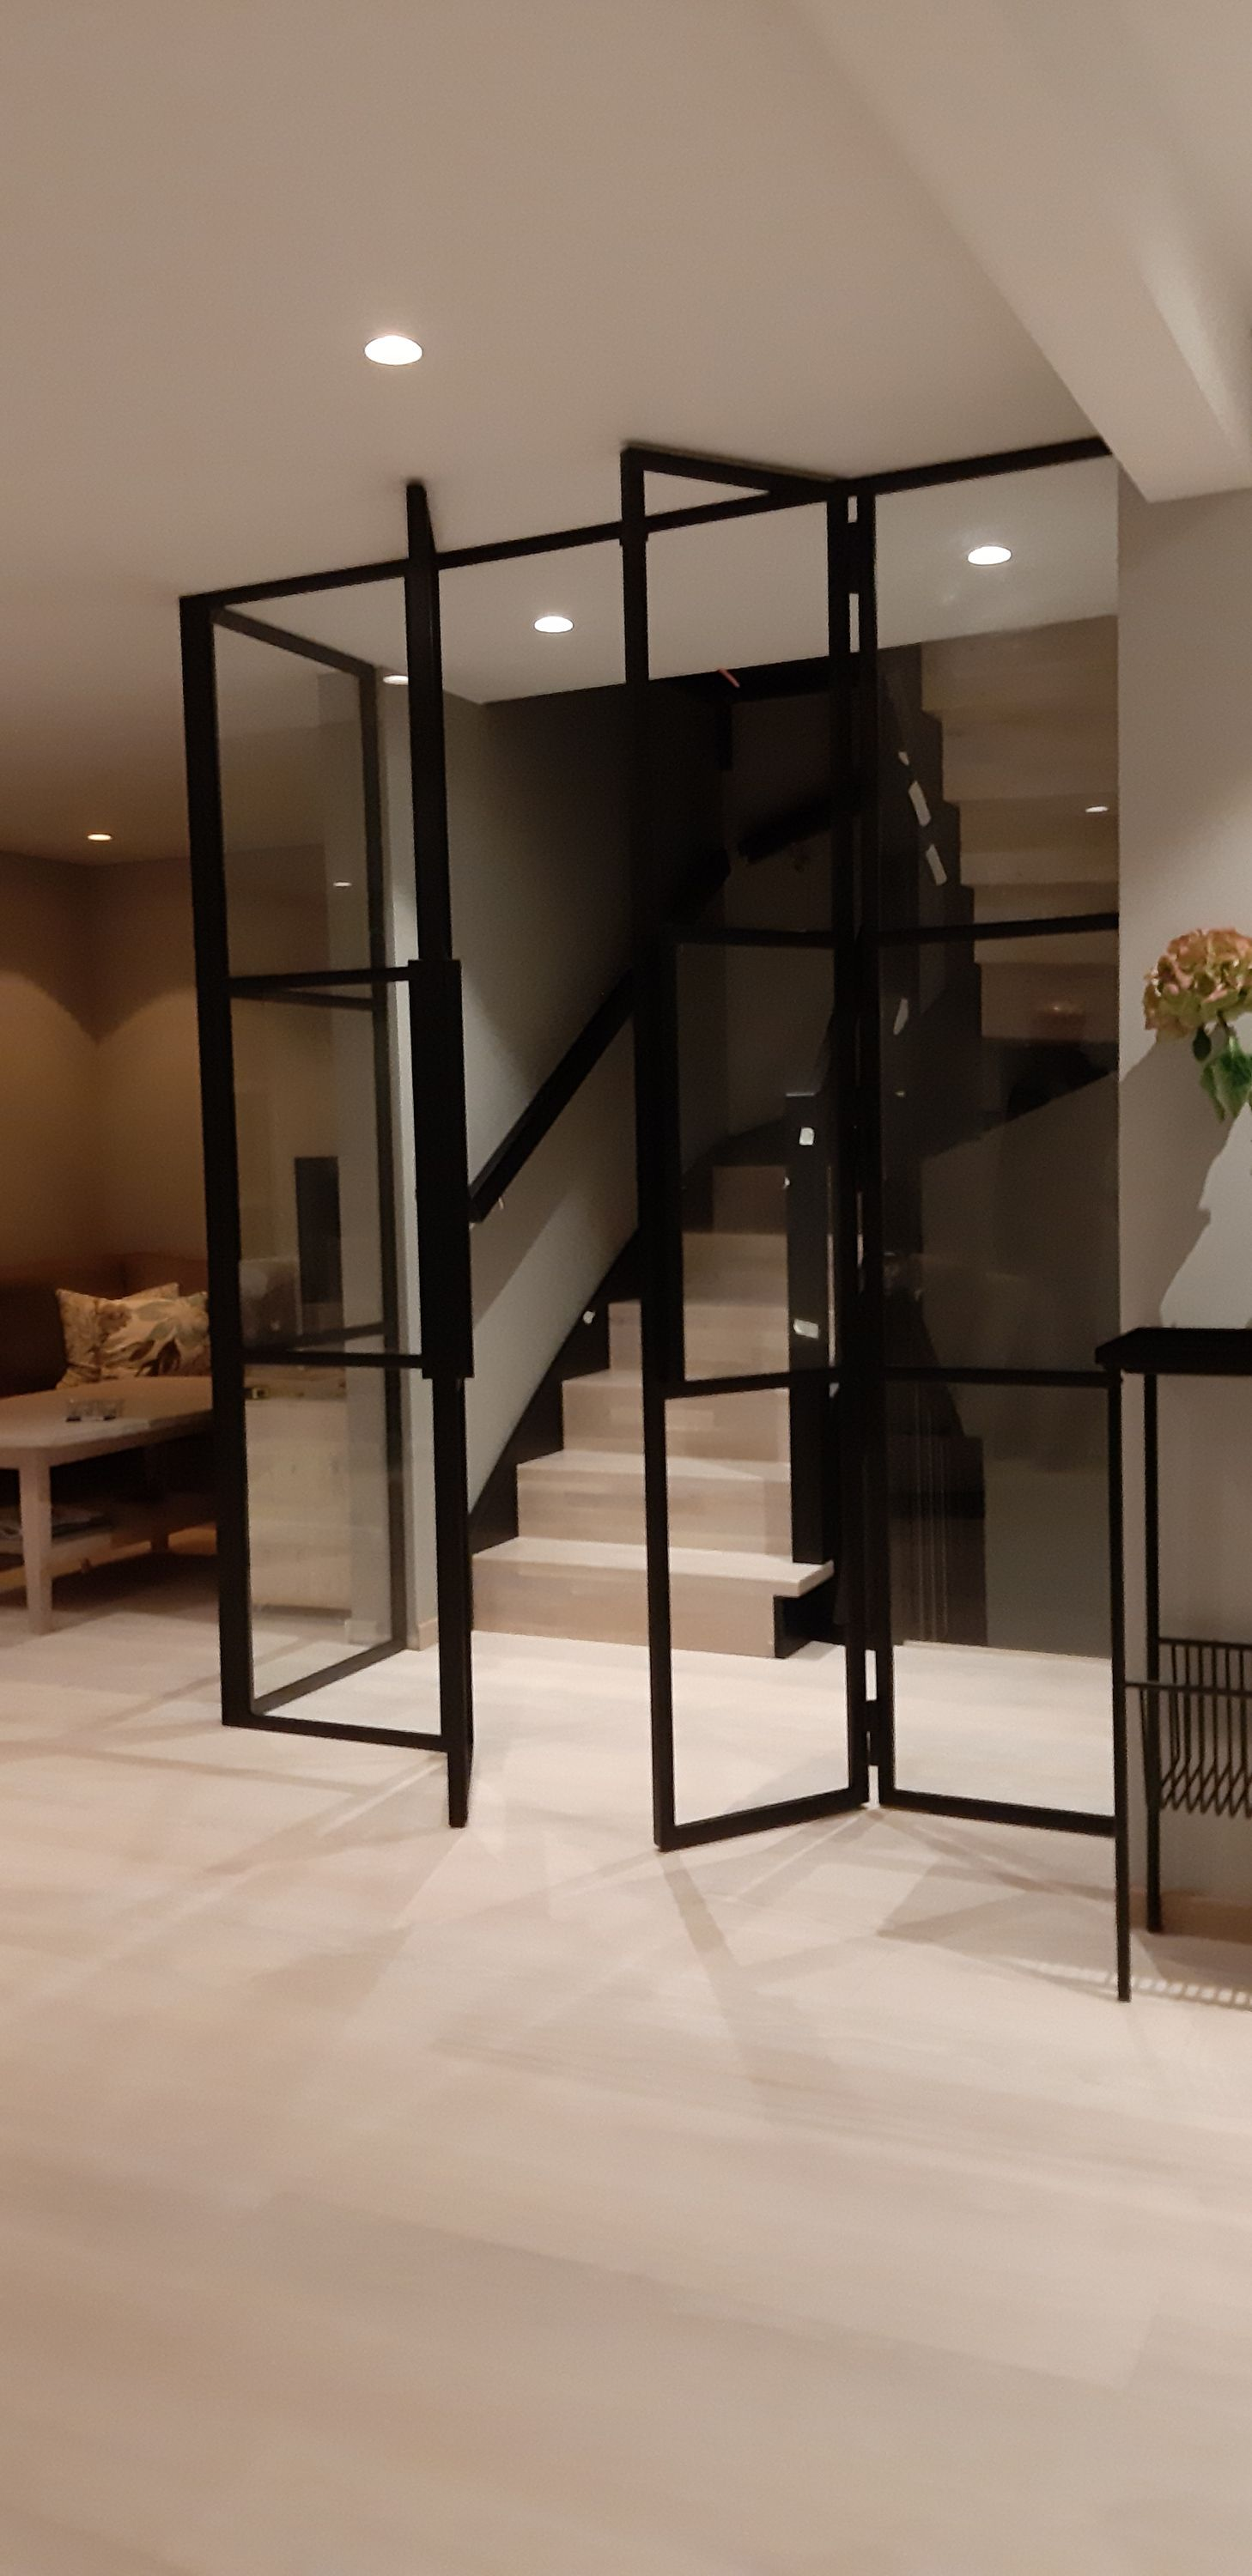 Double french doors wifht fixed sidefields and corner soluti…